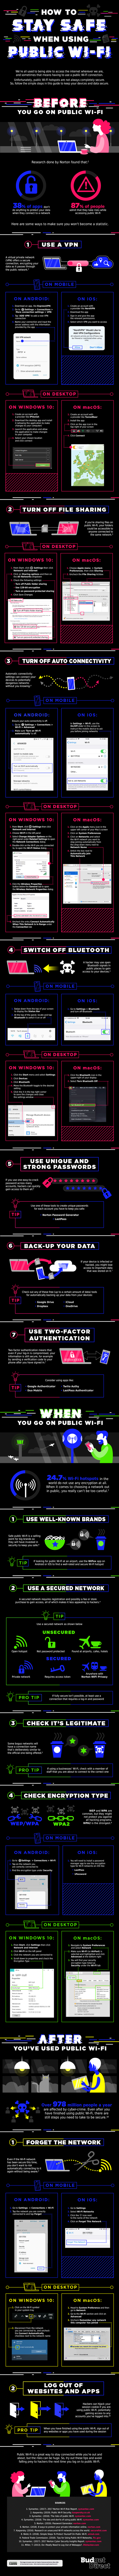 How to stay safe when using public Wi-Fi #infographic